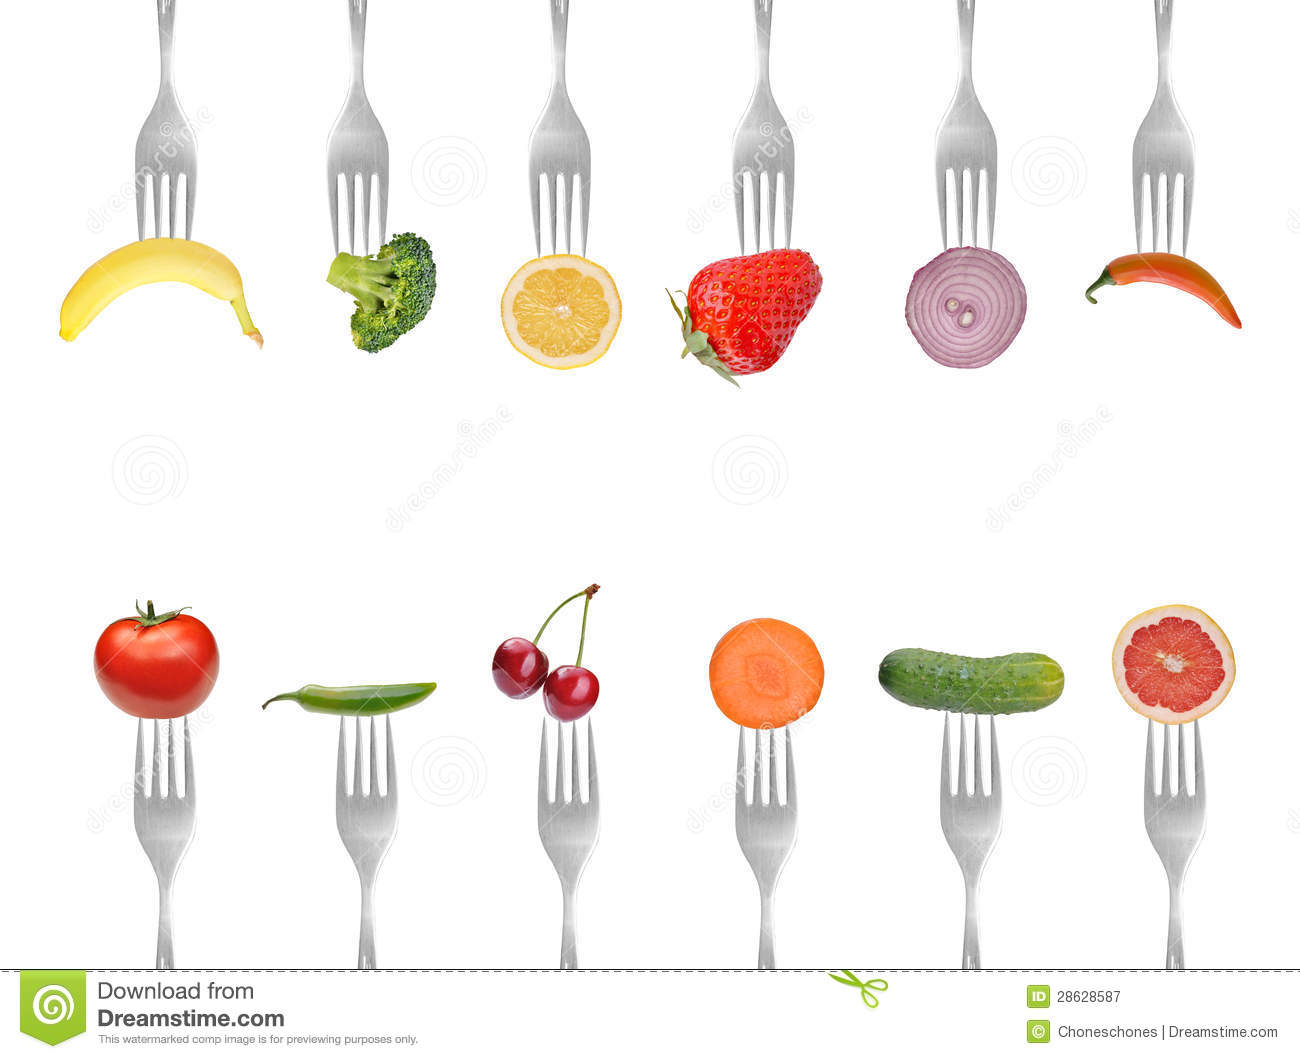 Collection of forks with vegetables and fruits